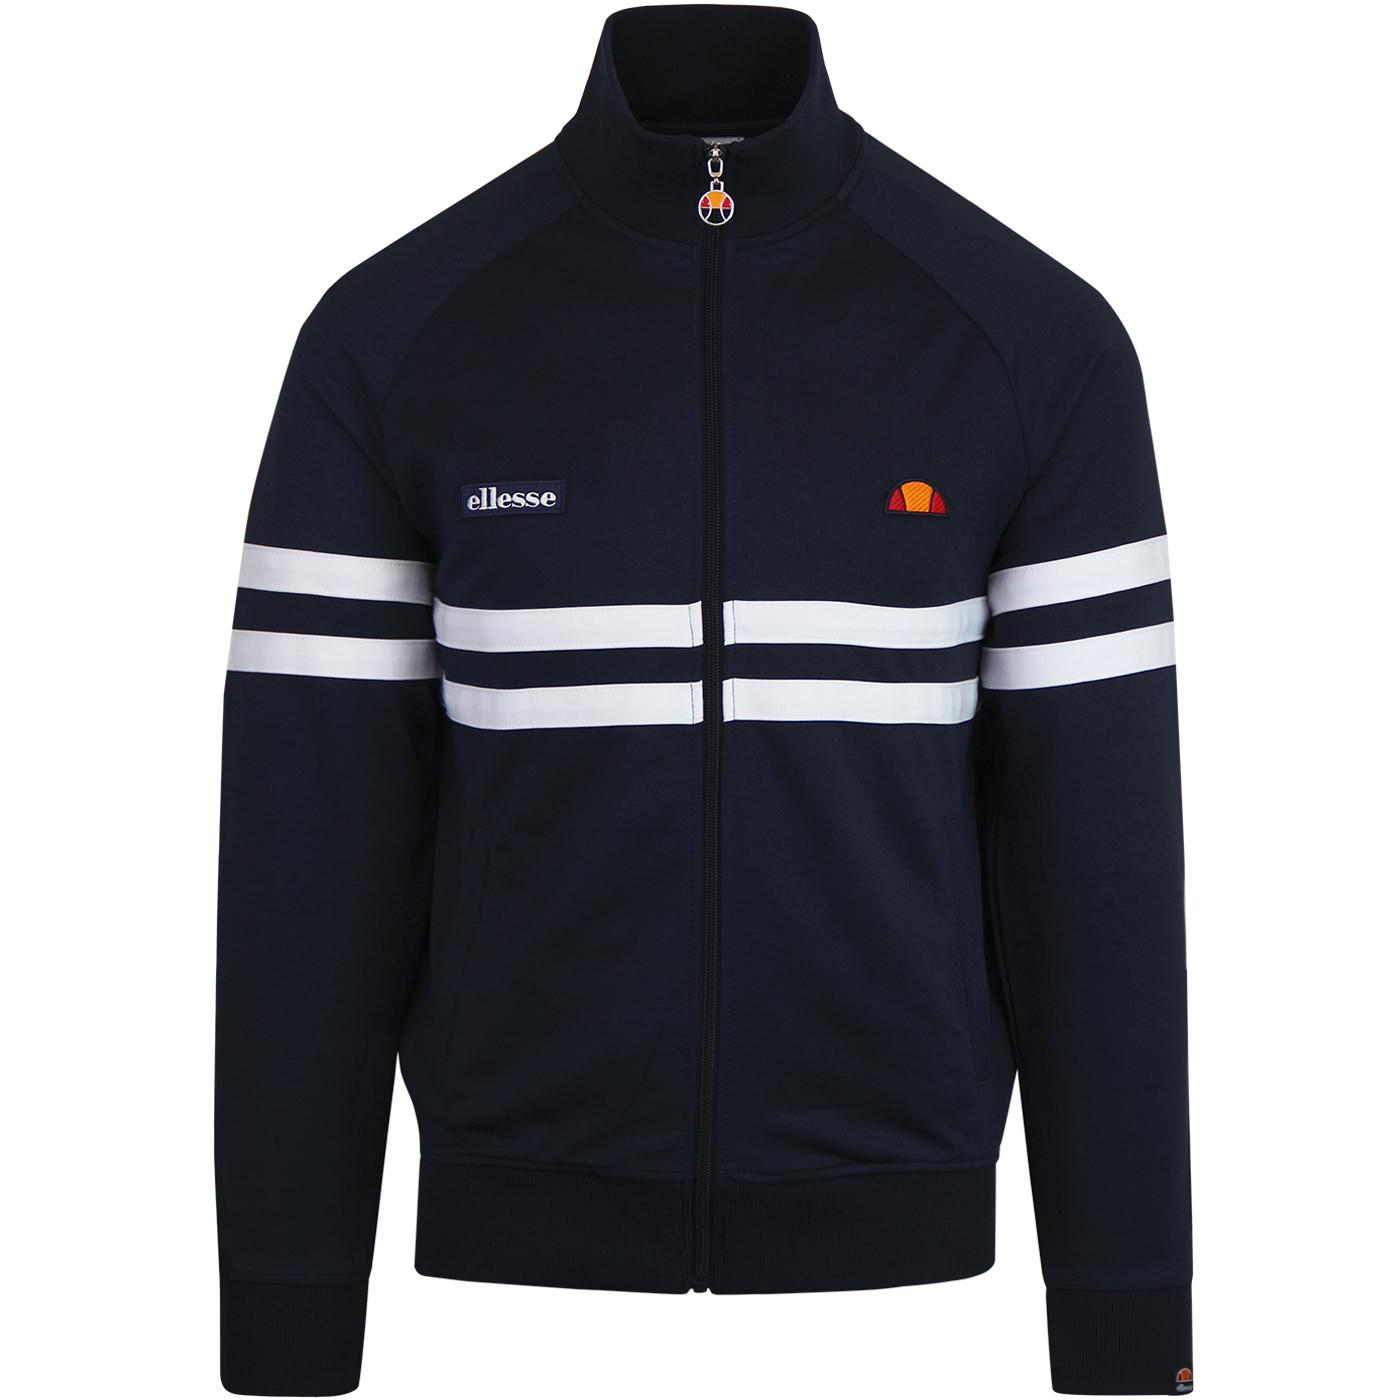 Rimini ELLESSE Retro 80s Casuals Track Top NAVY